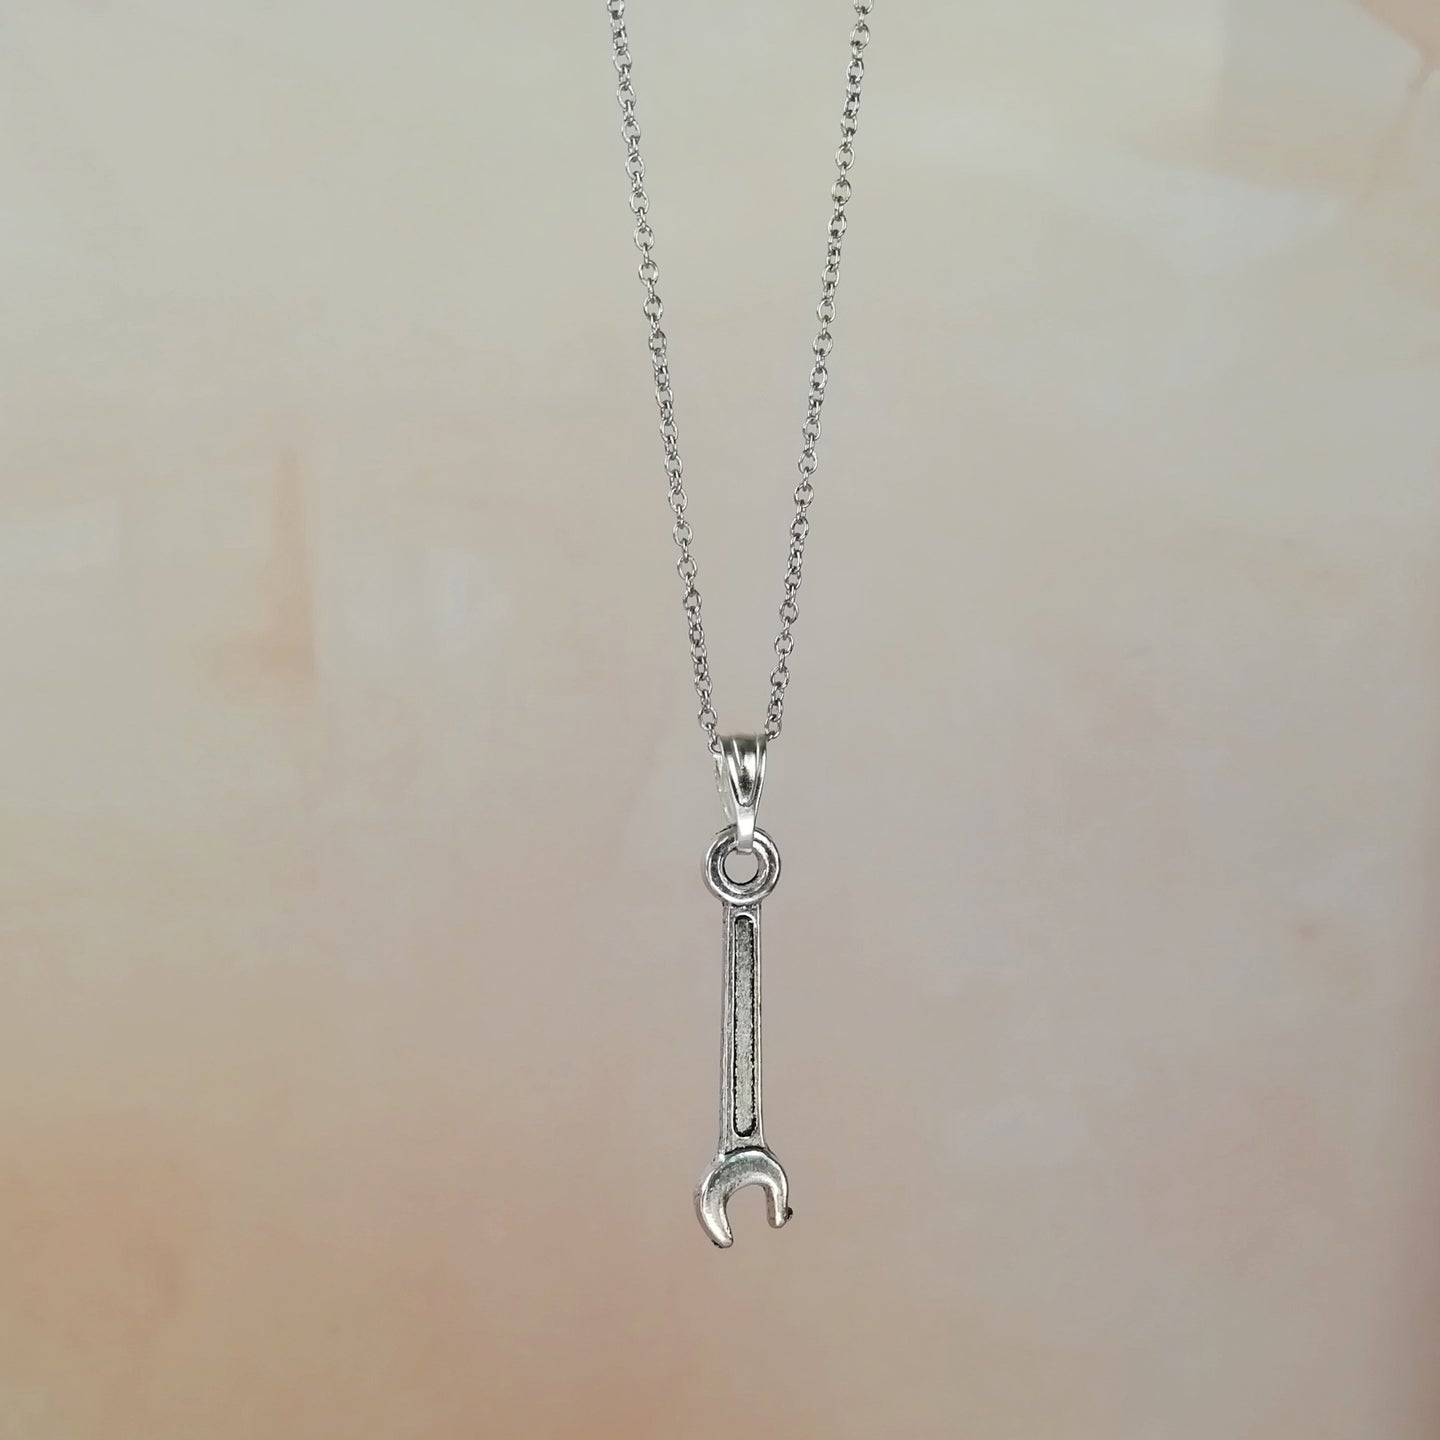 Spanner Necklace